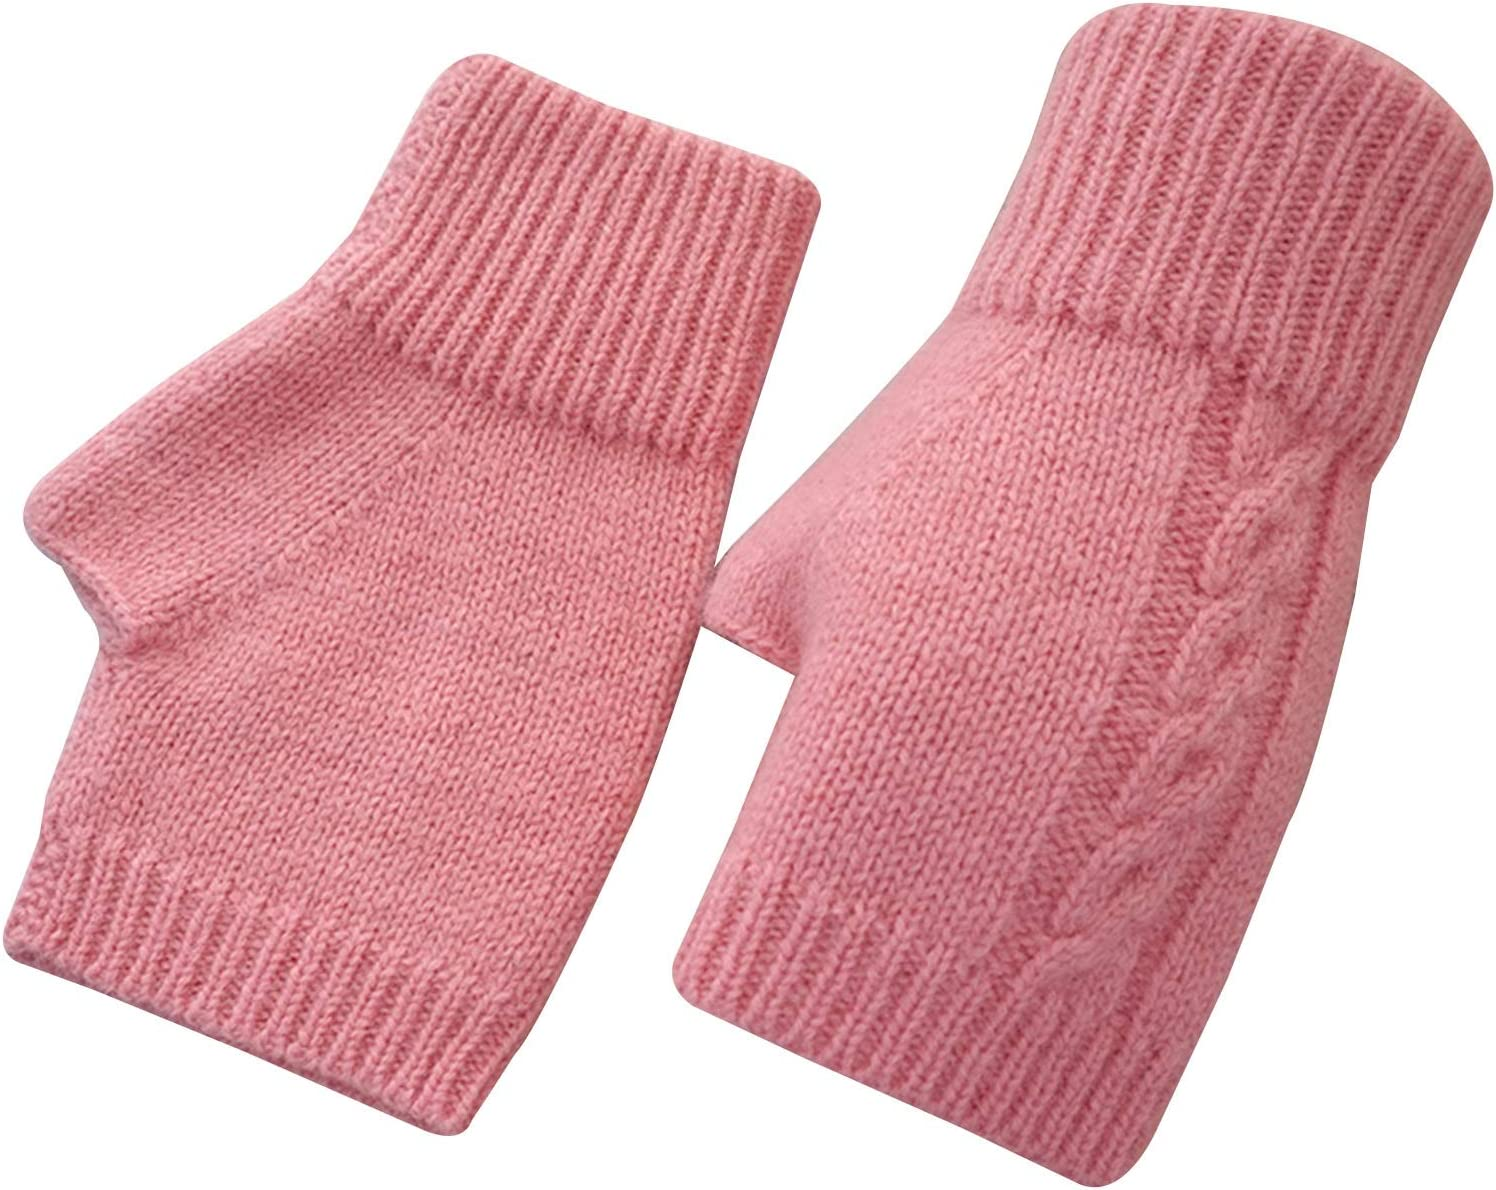 FOLDING Gloves Fingerless Knitted Gloves Women Winter Touch Screen Fashion Solid Color Crochet Knitting (Color : Pink)